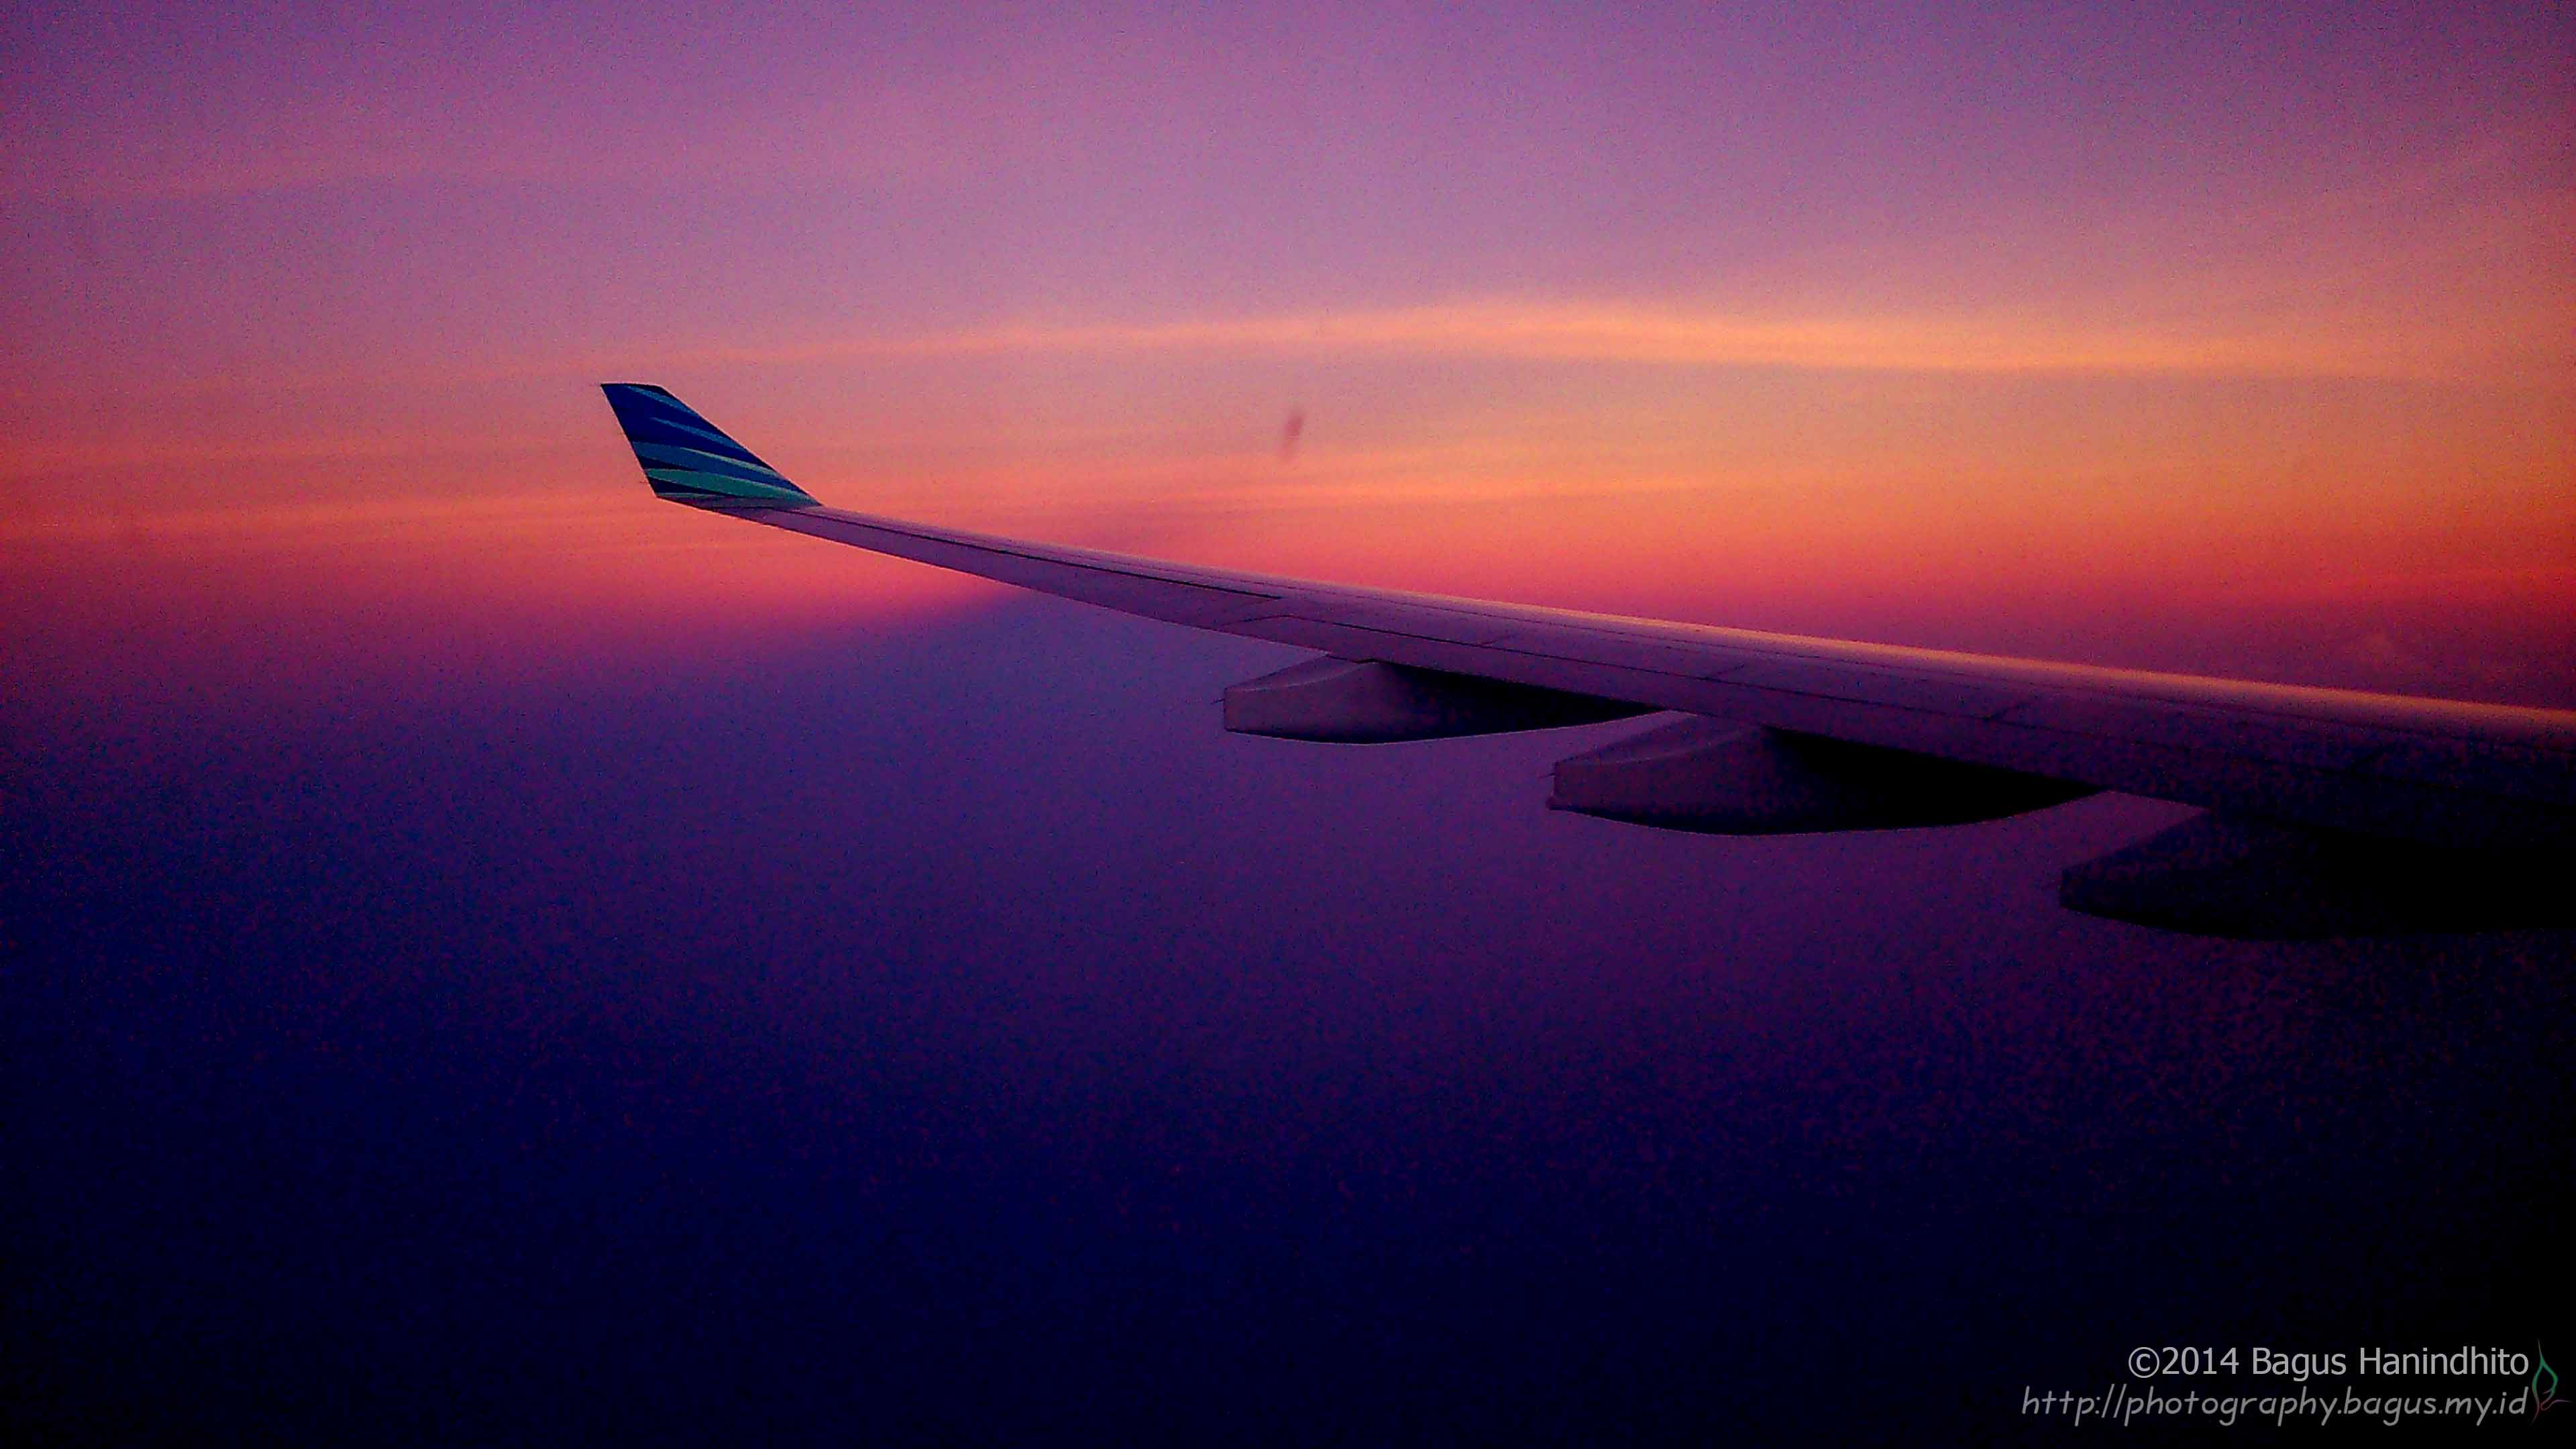 Twilight at sky of Jakarta as my plane approached CGK.